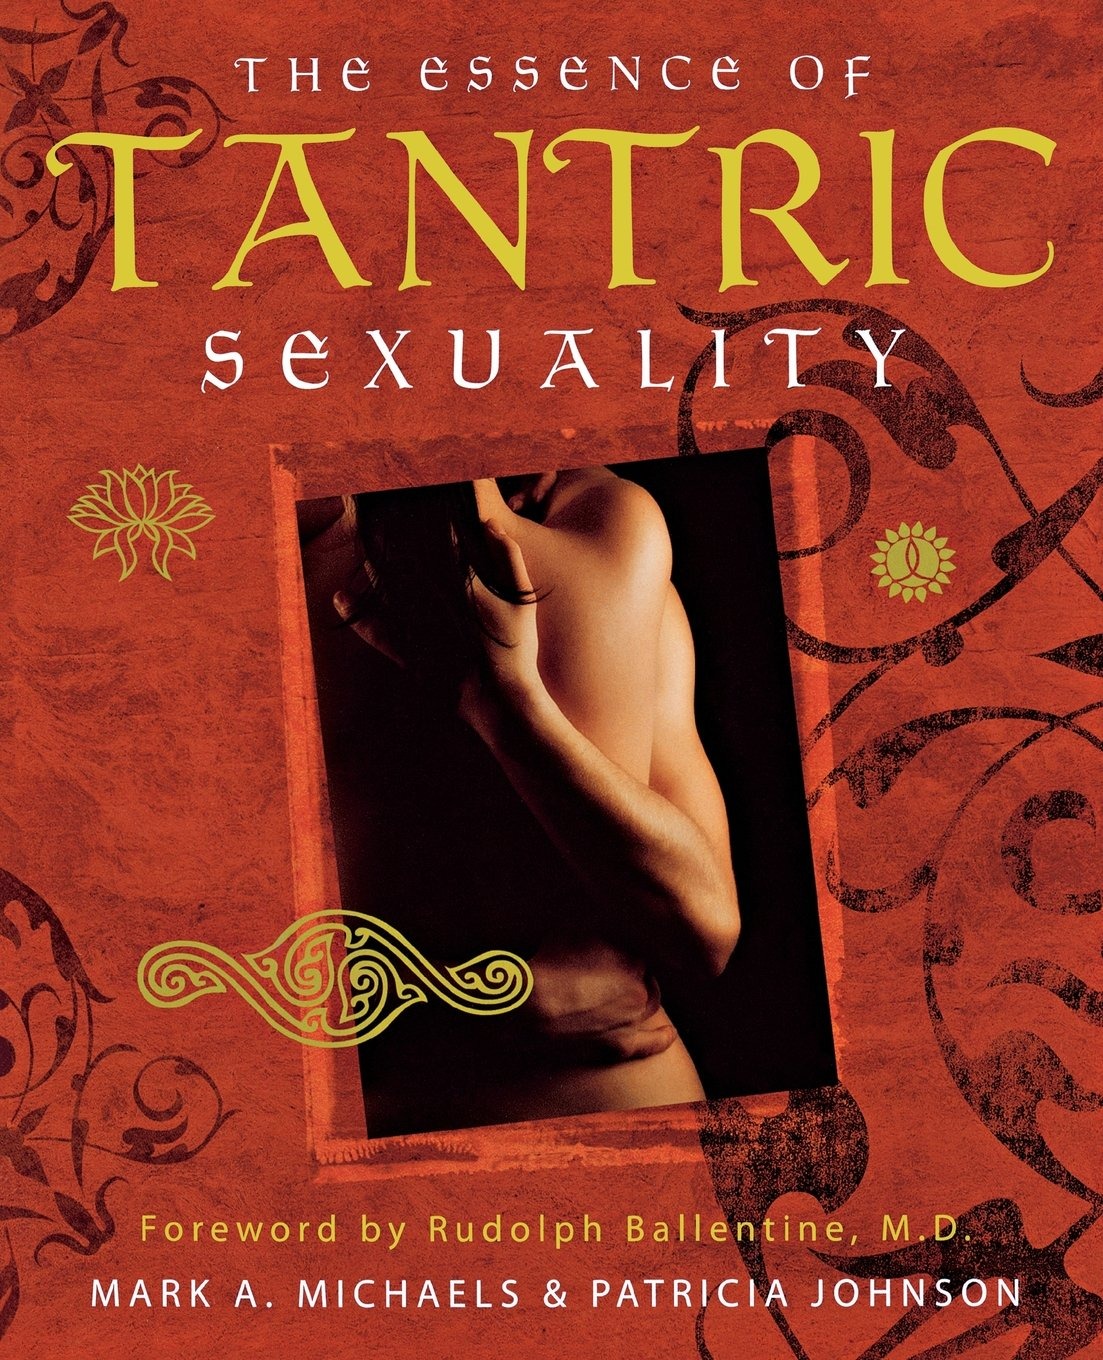 How to learn tantric sexuality